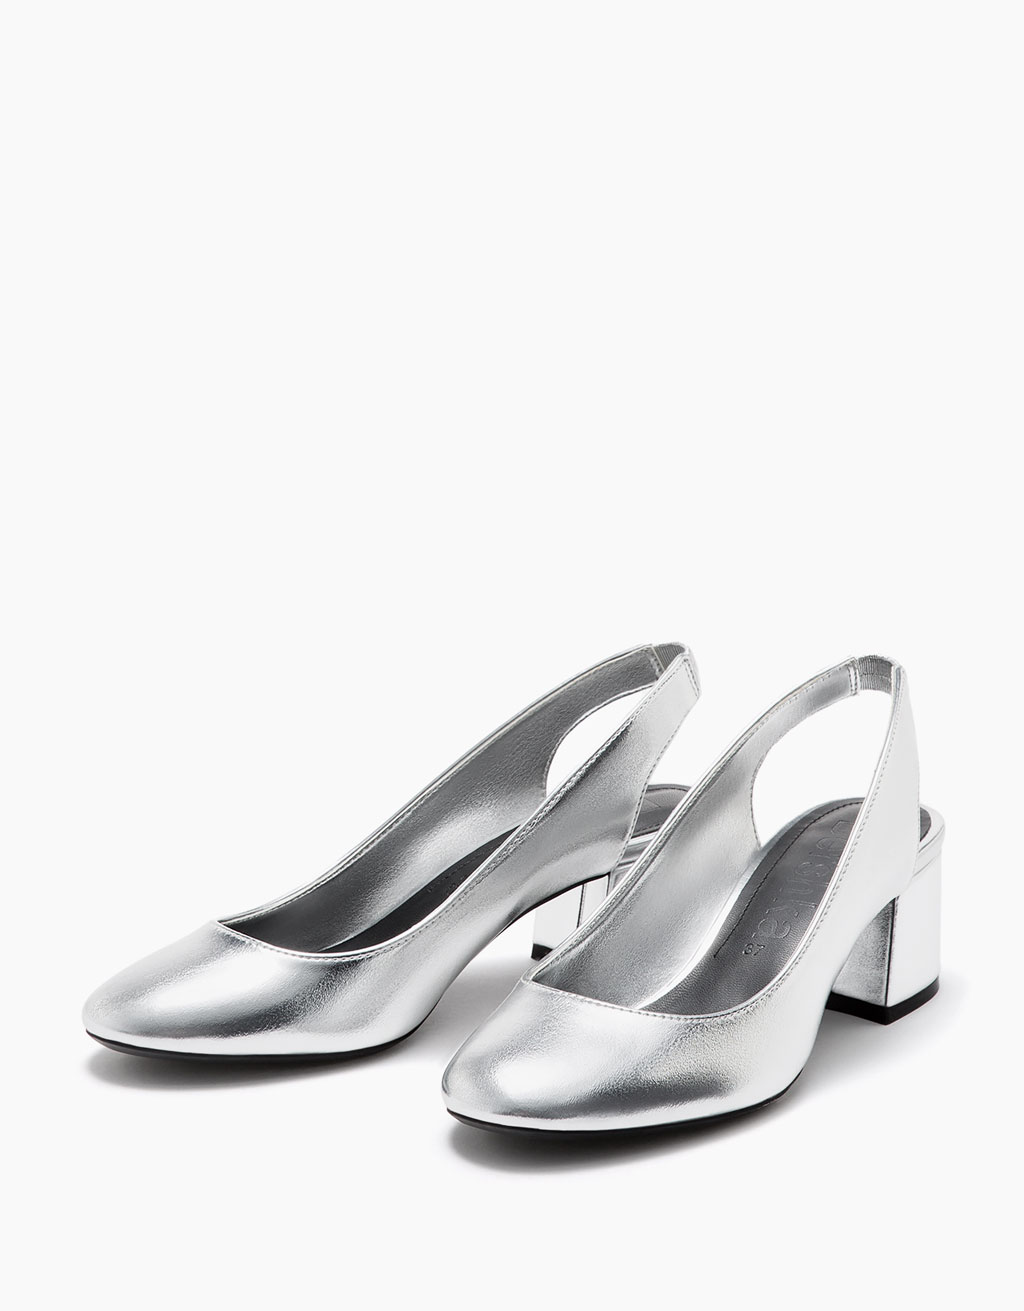 Shiny metallic slingback ballerinas with heel